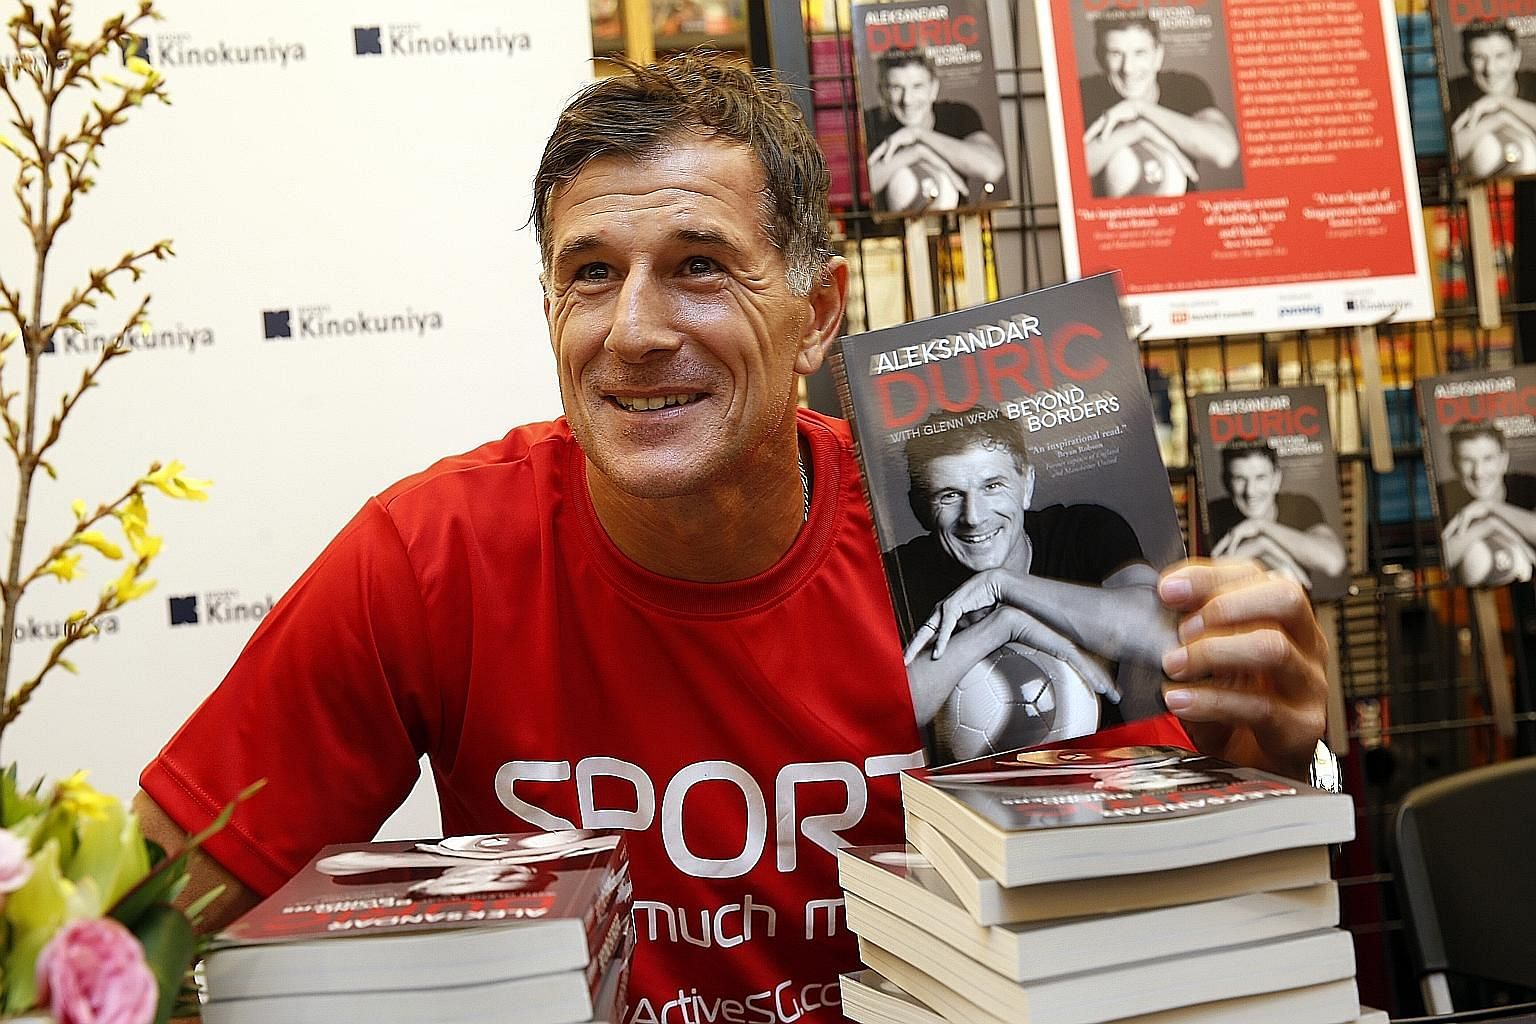 Aleksandar Duric at the book signing of his new autobiography Beyond Borders, which recounts his life journey. The 45-year-old will be the principal of the newly set up ActiveSG Football Academy.